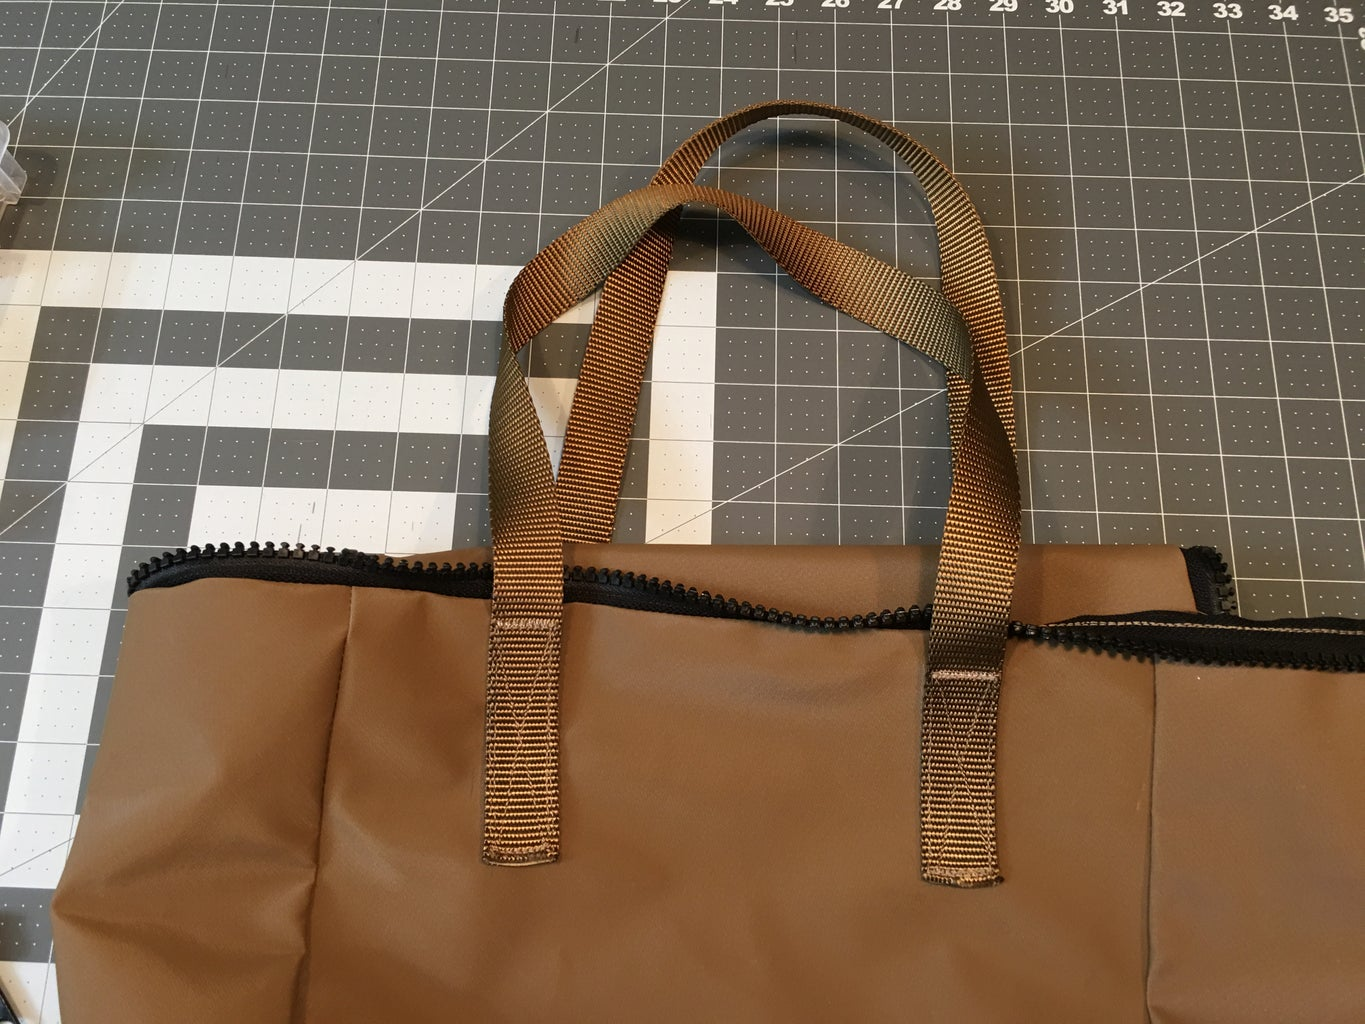 Adding Additional Handles to the Body of the Bag: